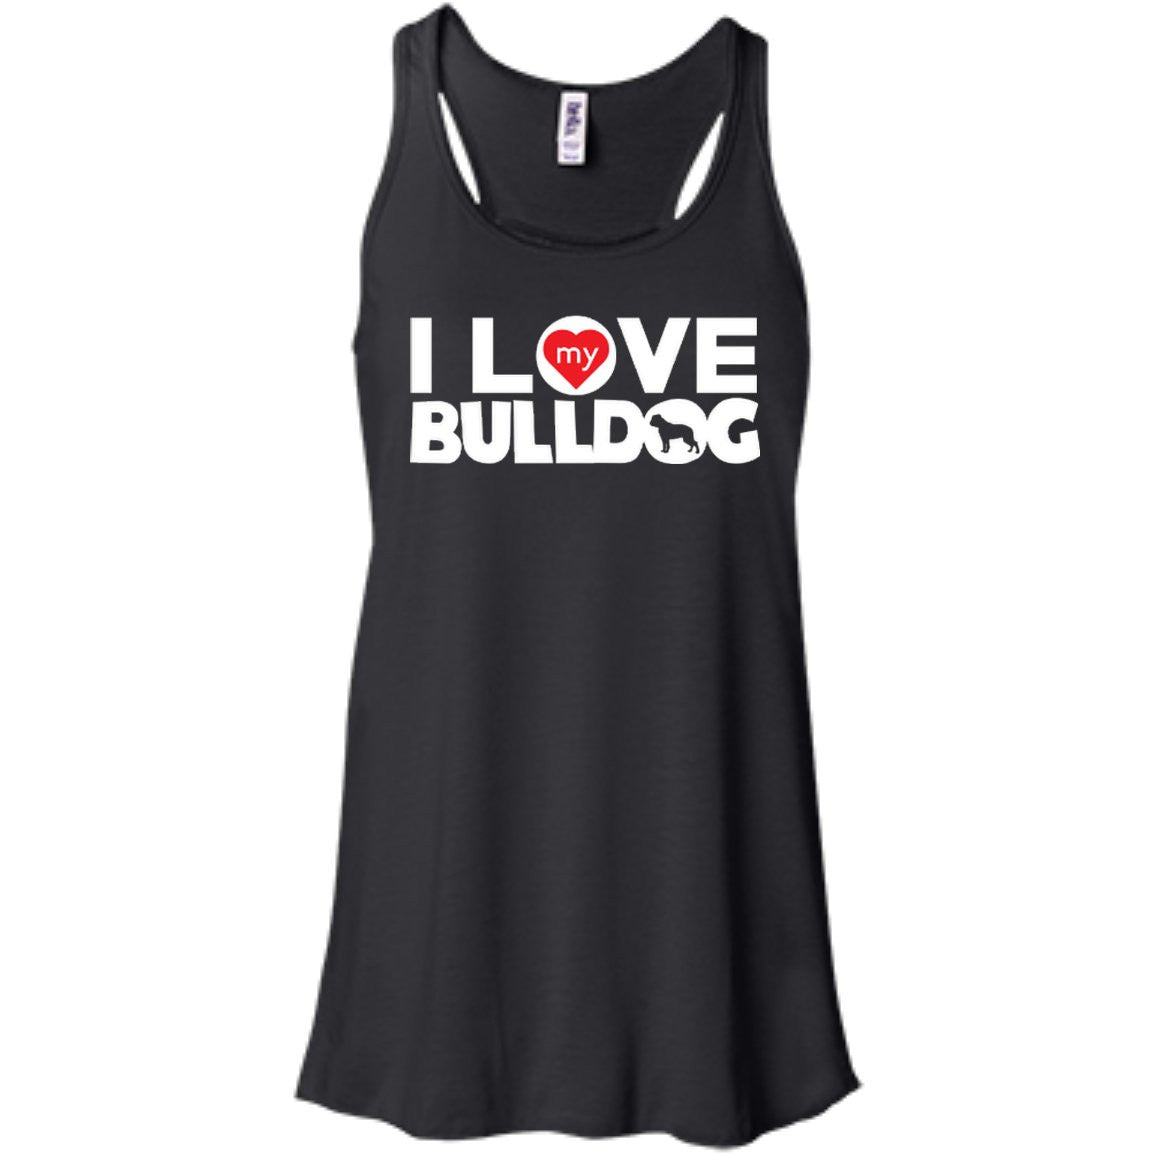 I Love My Bulldog - Bella+Canvas Flowy Racerback Tank